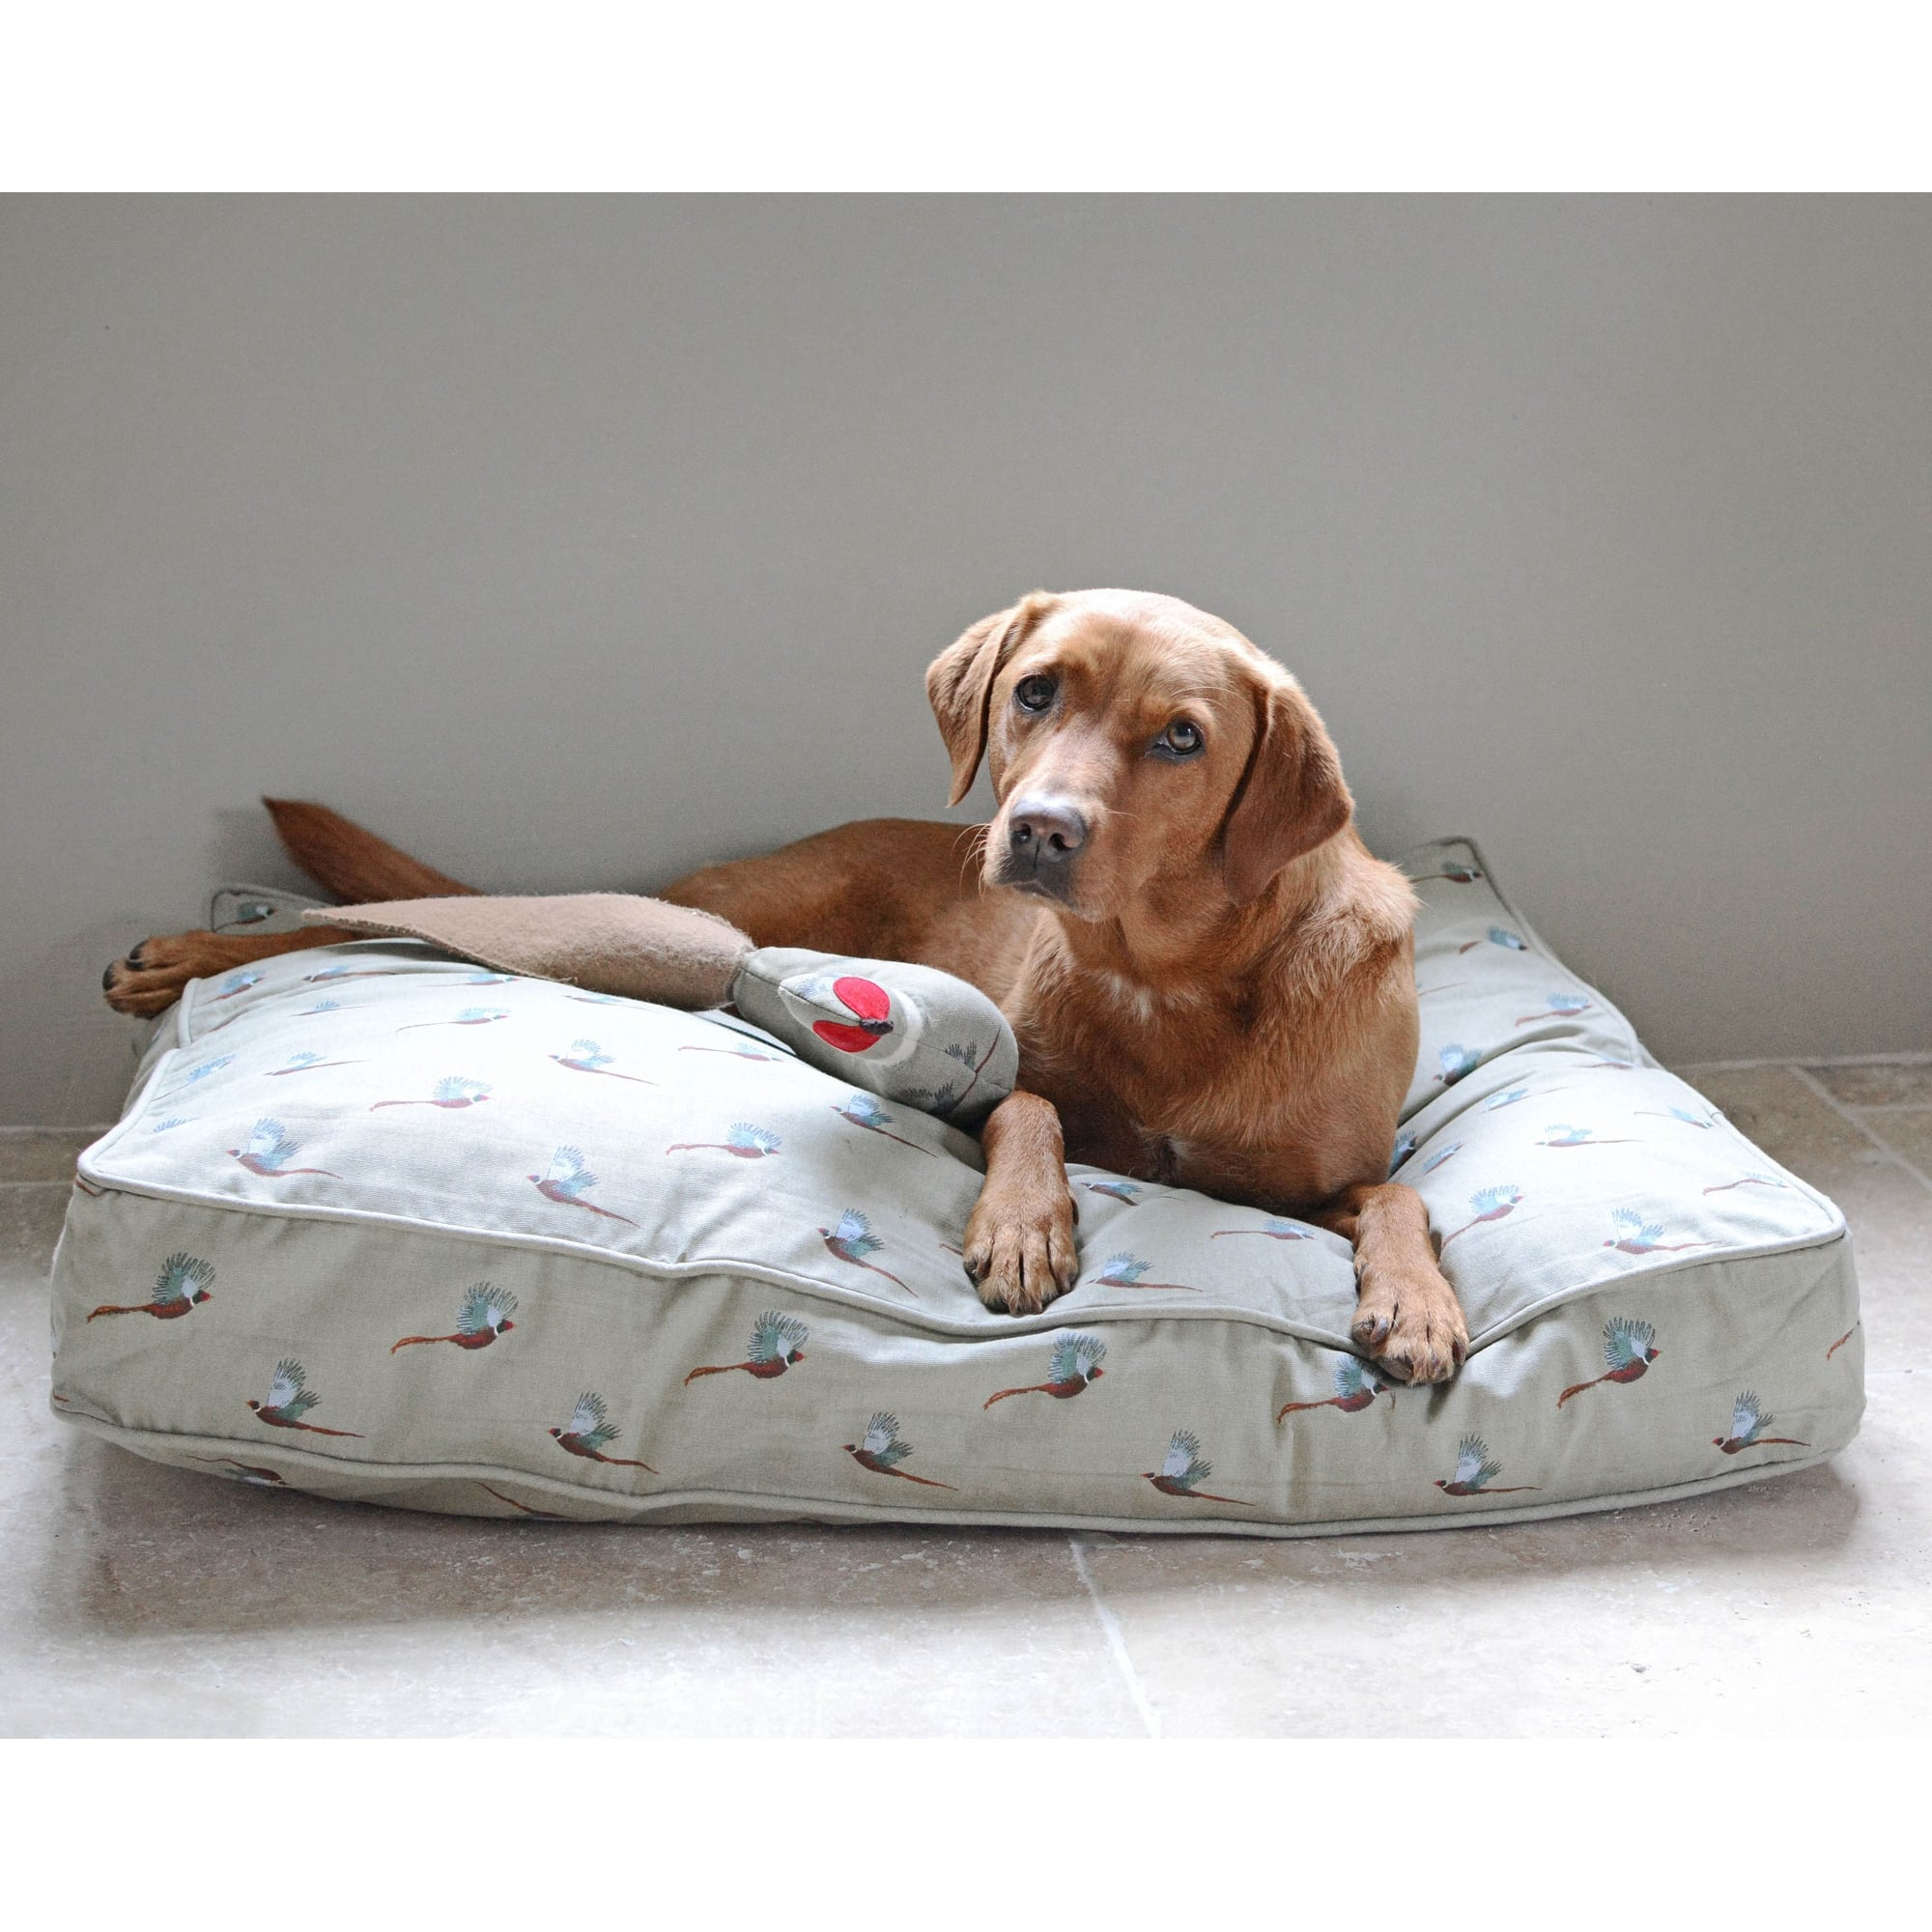 oxford bed dogs s washable the waterproof cover premium quality removable fabric xxl to dog pin